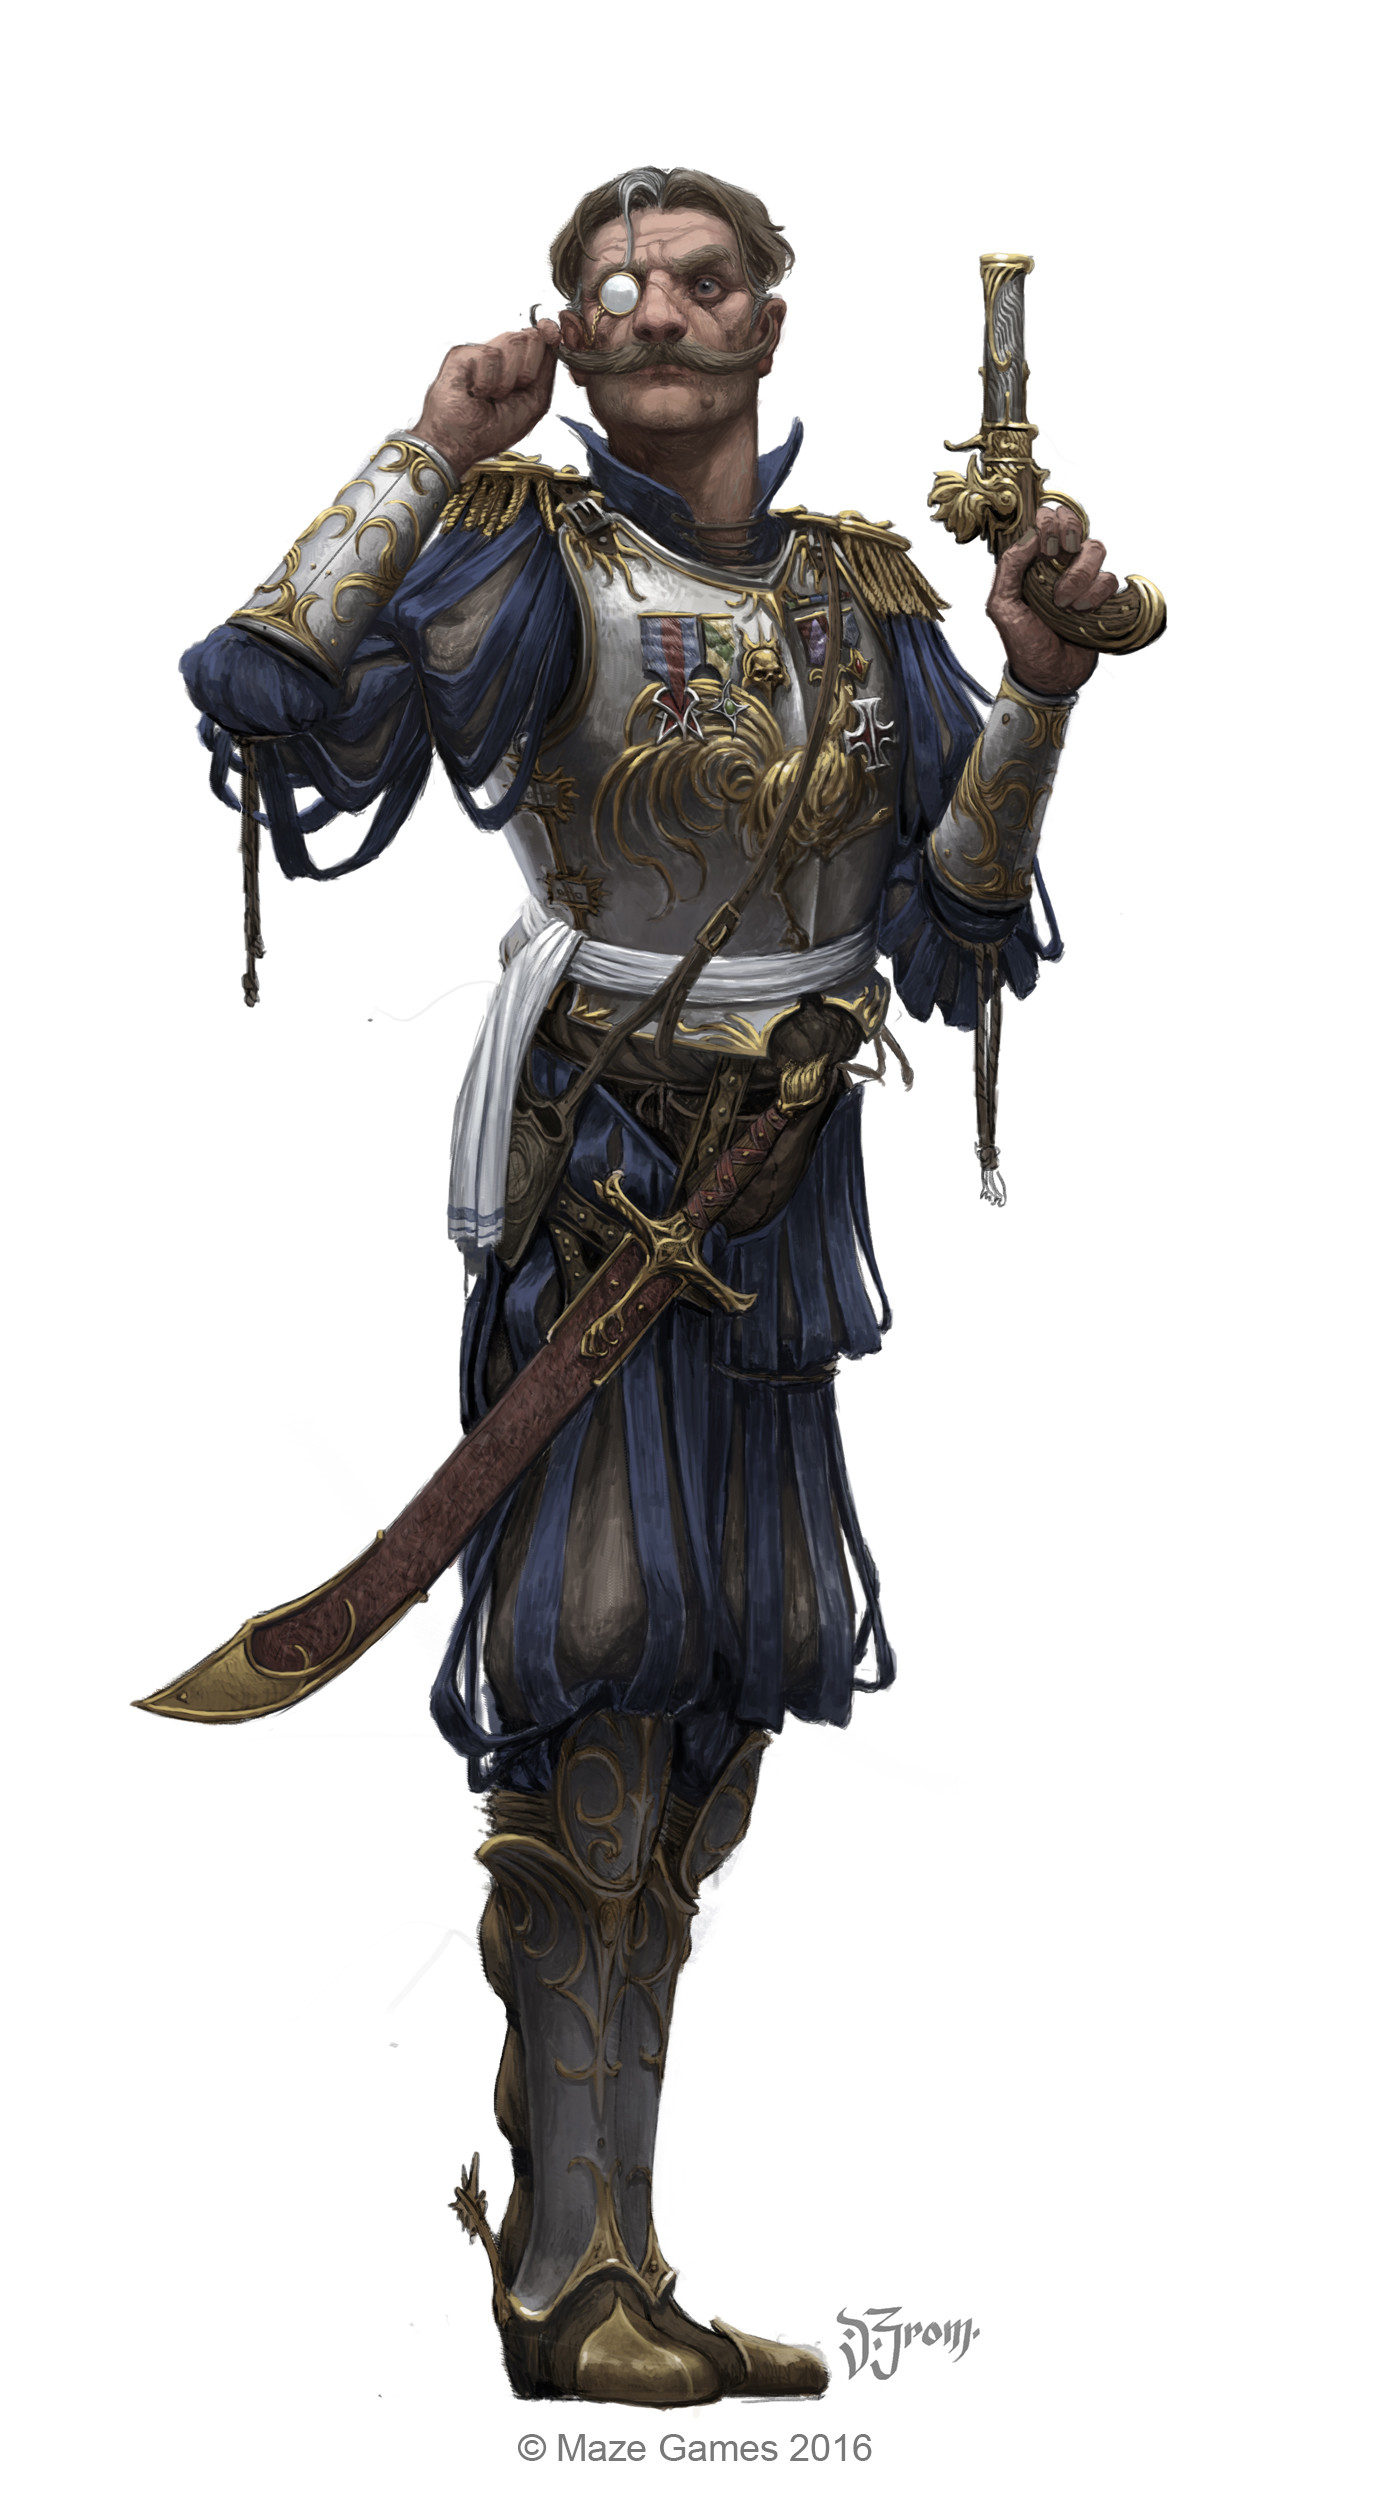 Daniel zrom danielzrom orcquest officier